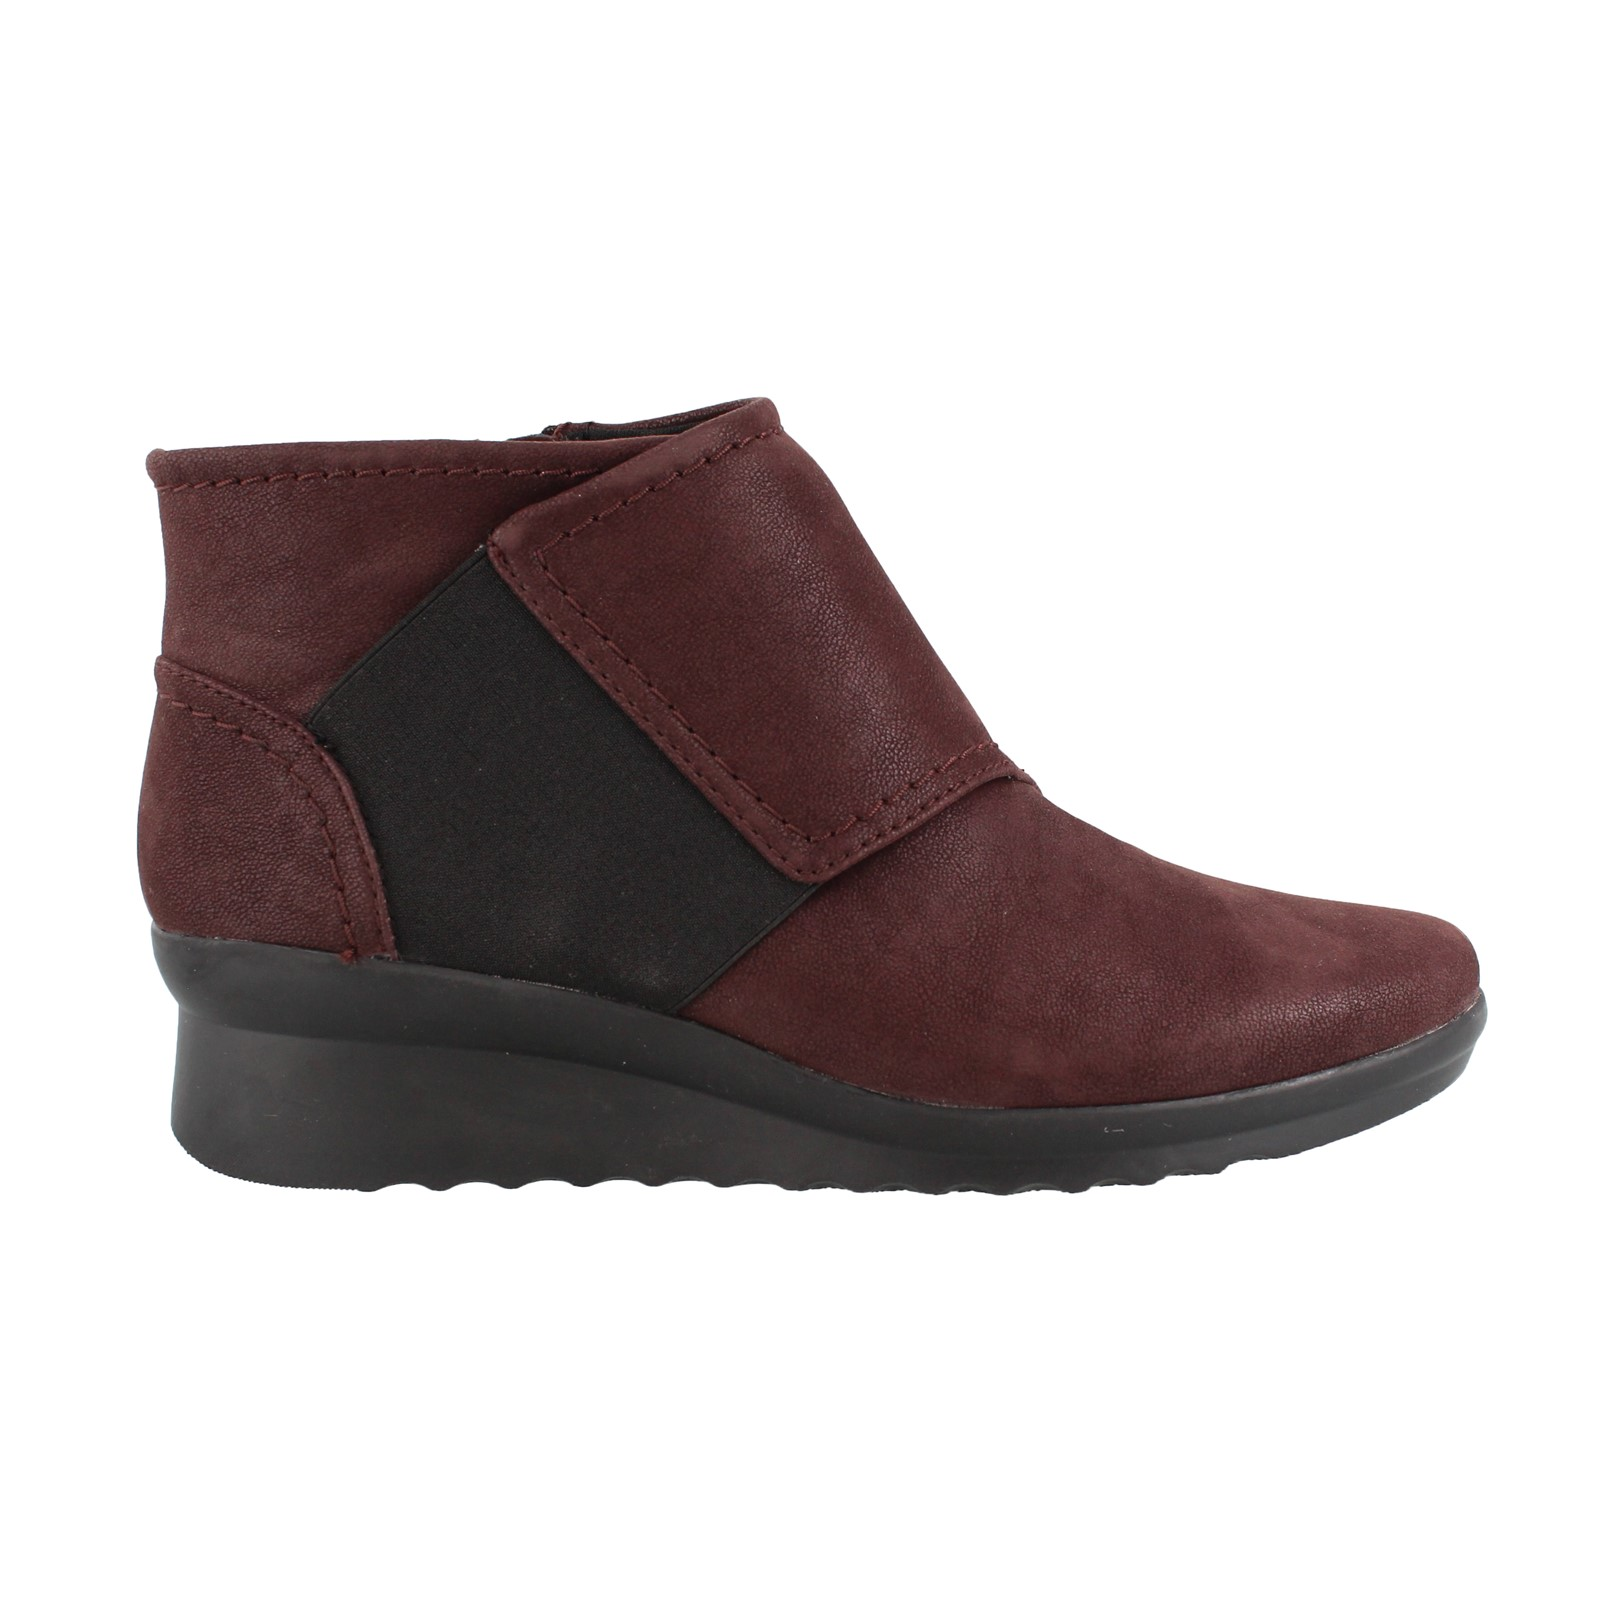 Women's Clarks, Caddell Rush Ankle Boots